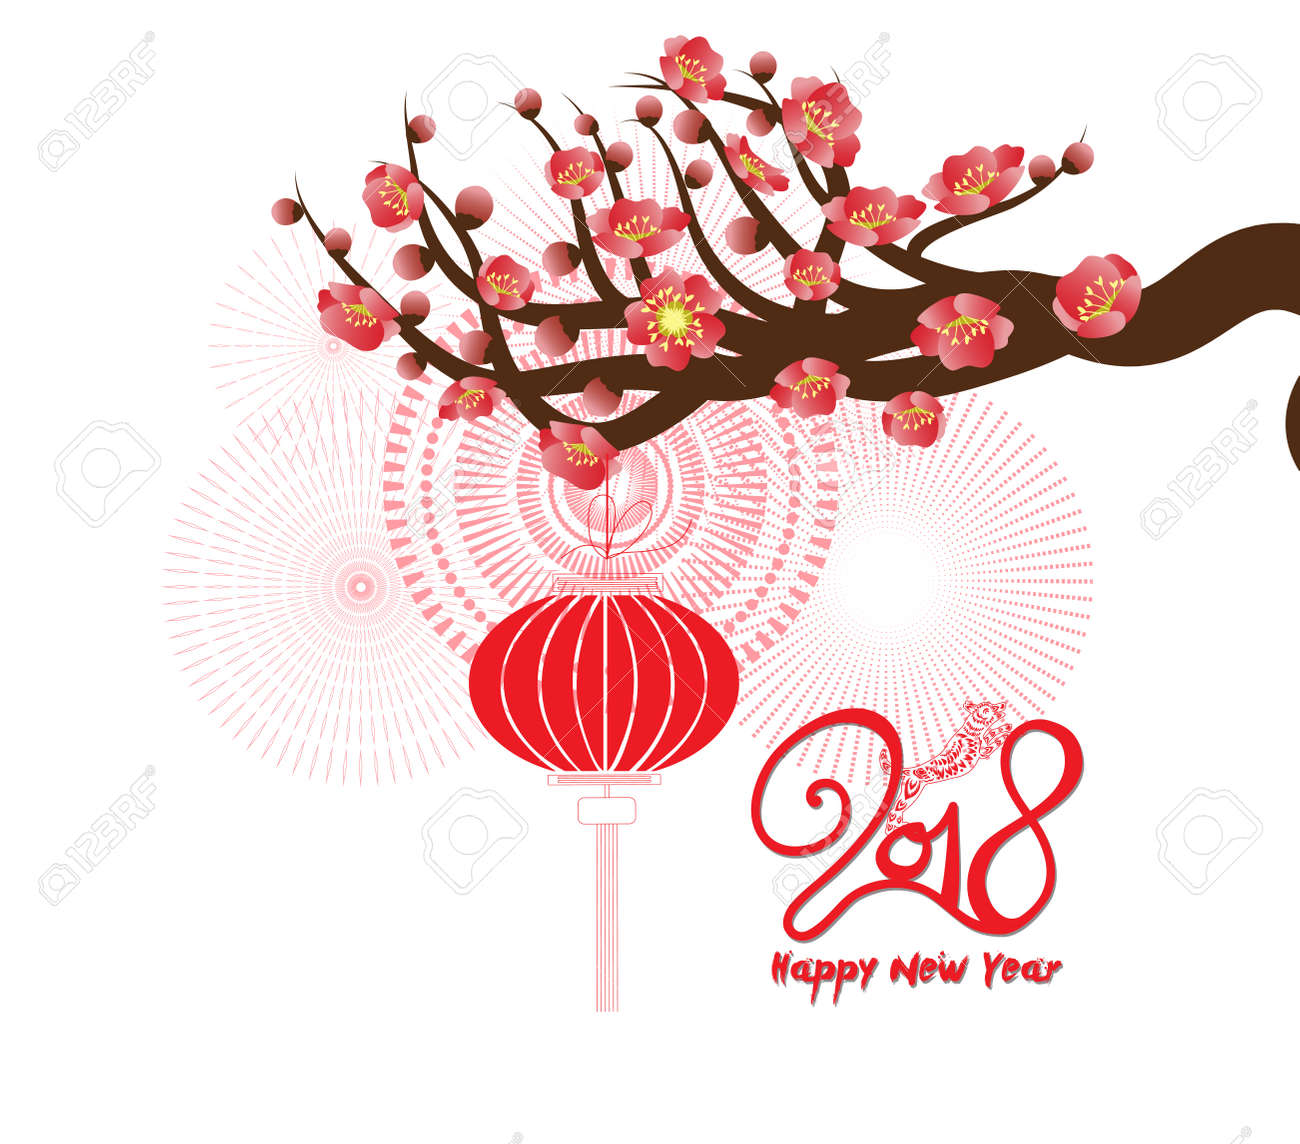 happy new year 2018 greeting card and chinese new year of the dog with cherry blossom